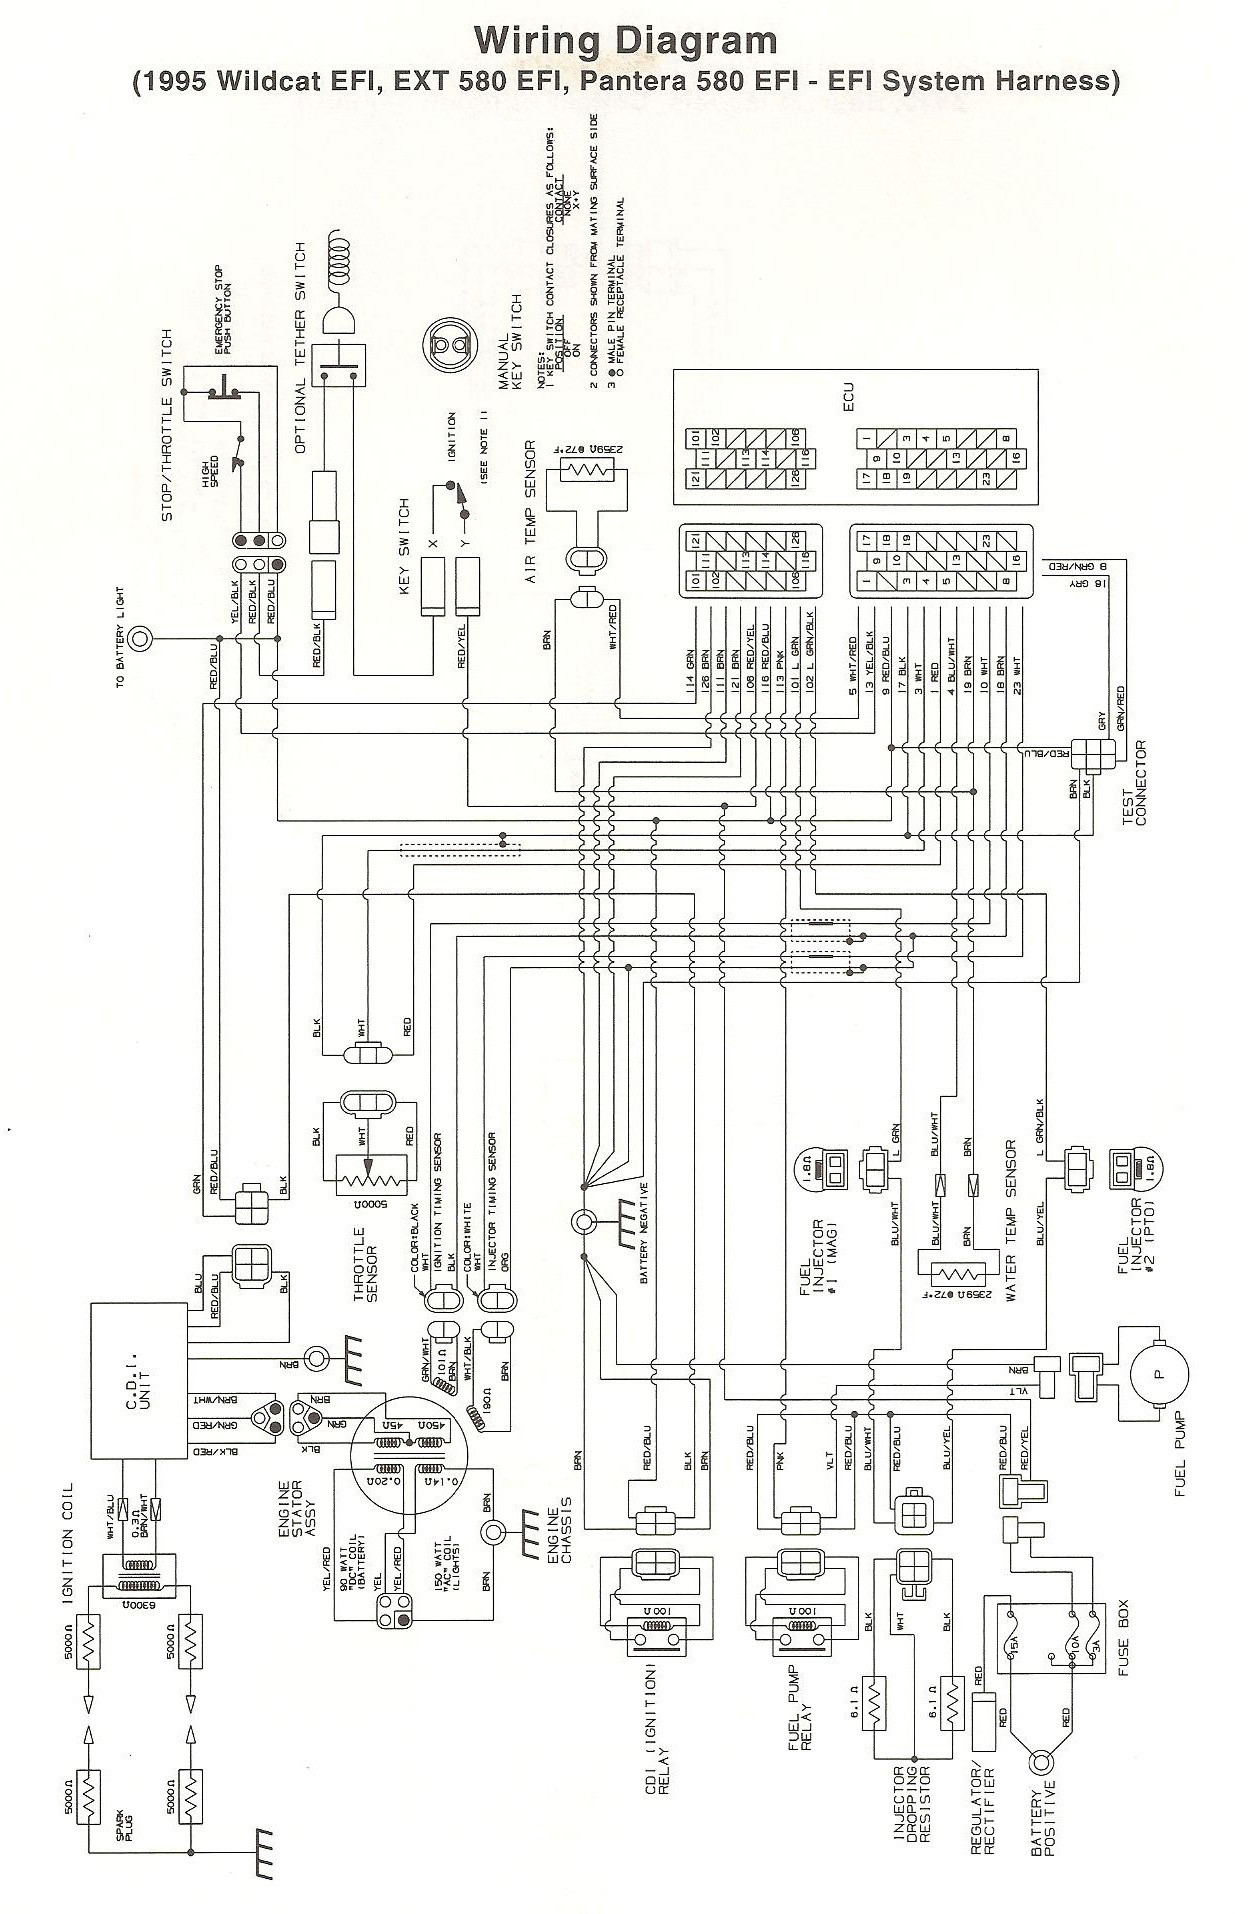 Wiring Diagram Yamaha Sniper $ Www.download-app.co